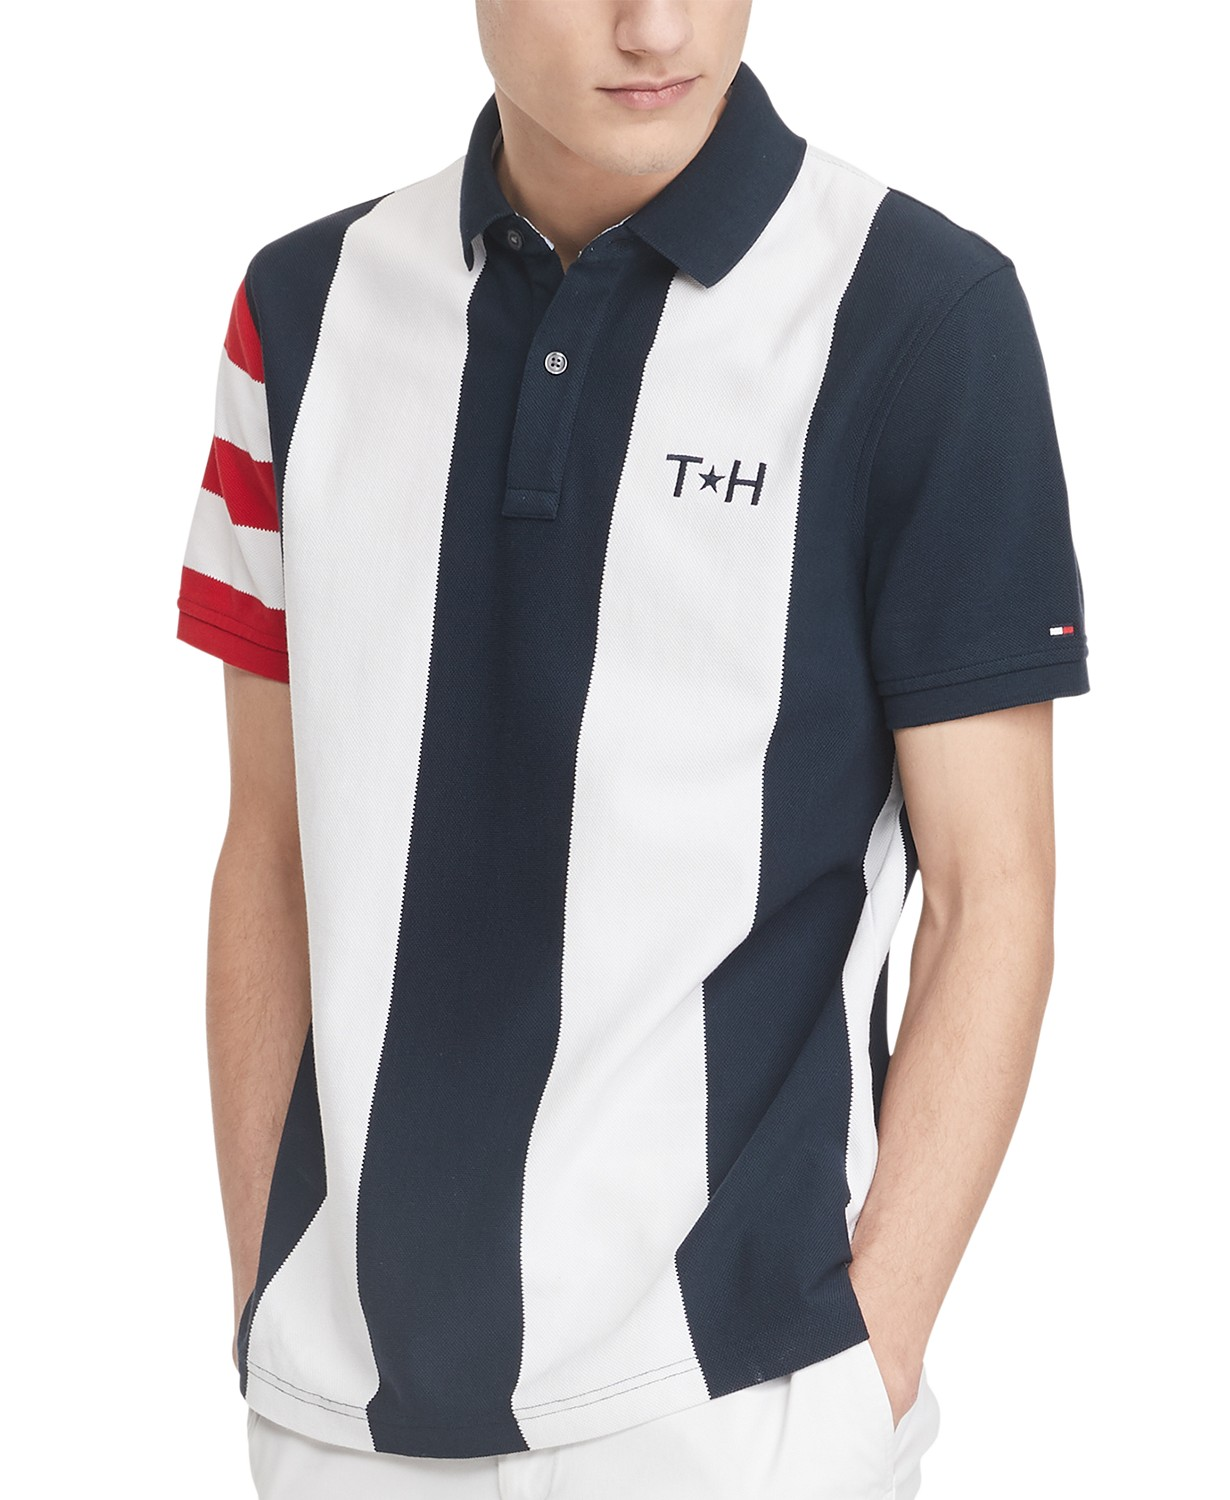 Tommy Hilfiger Men's Abram Custom-Fit Colorblocked Stripe Polo Shirt